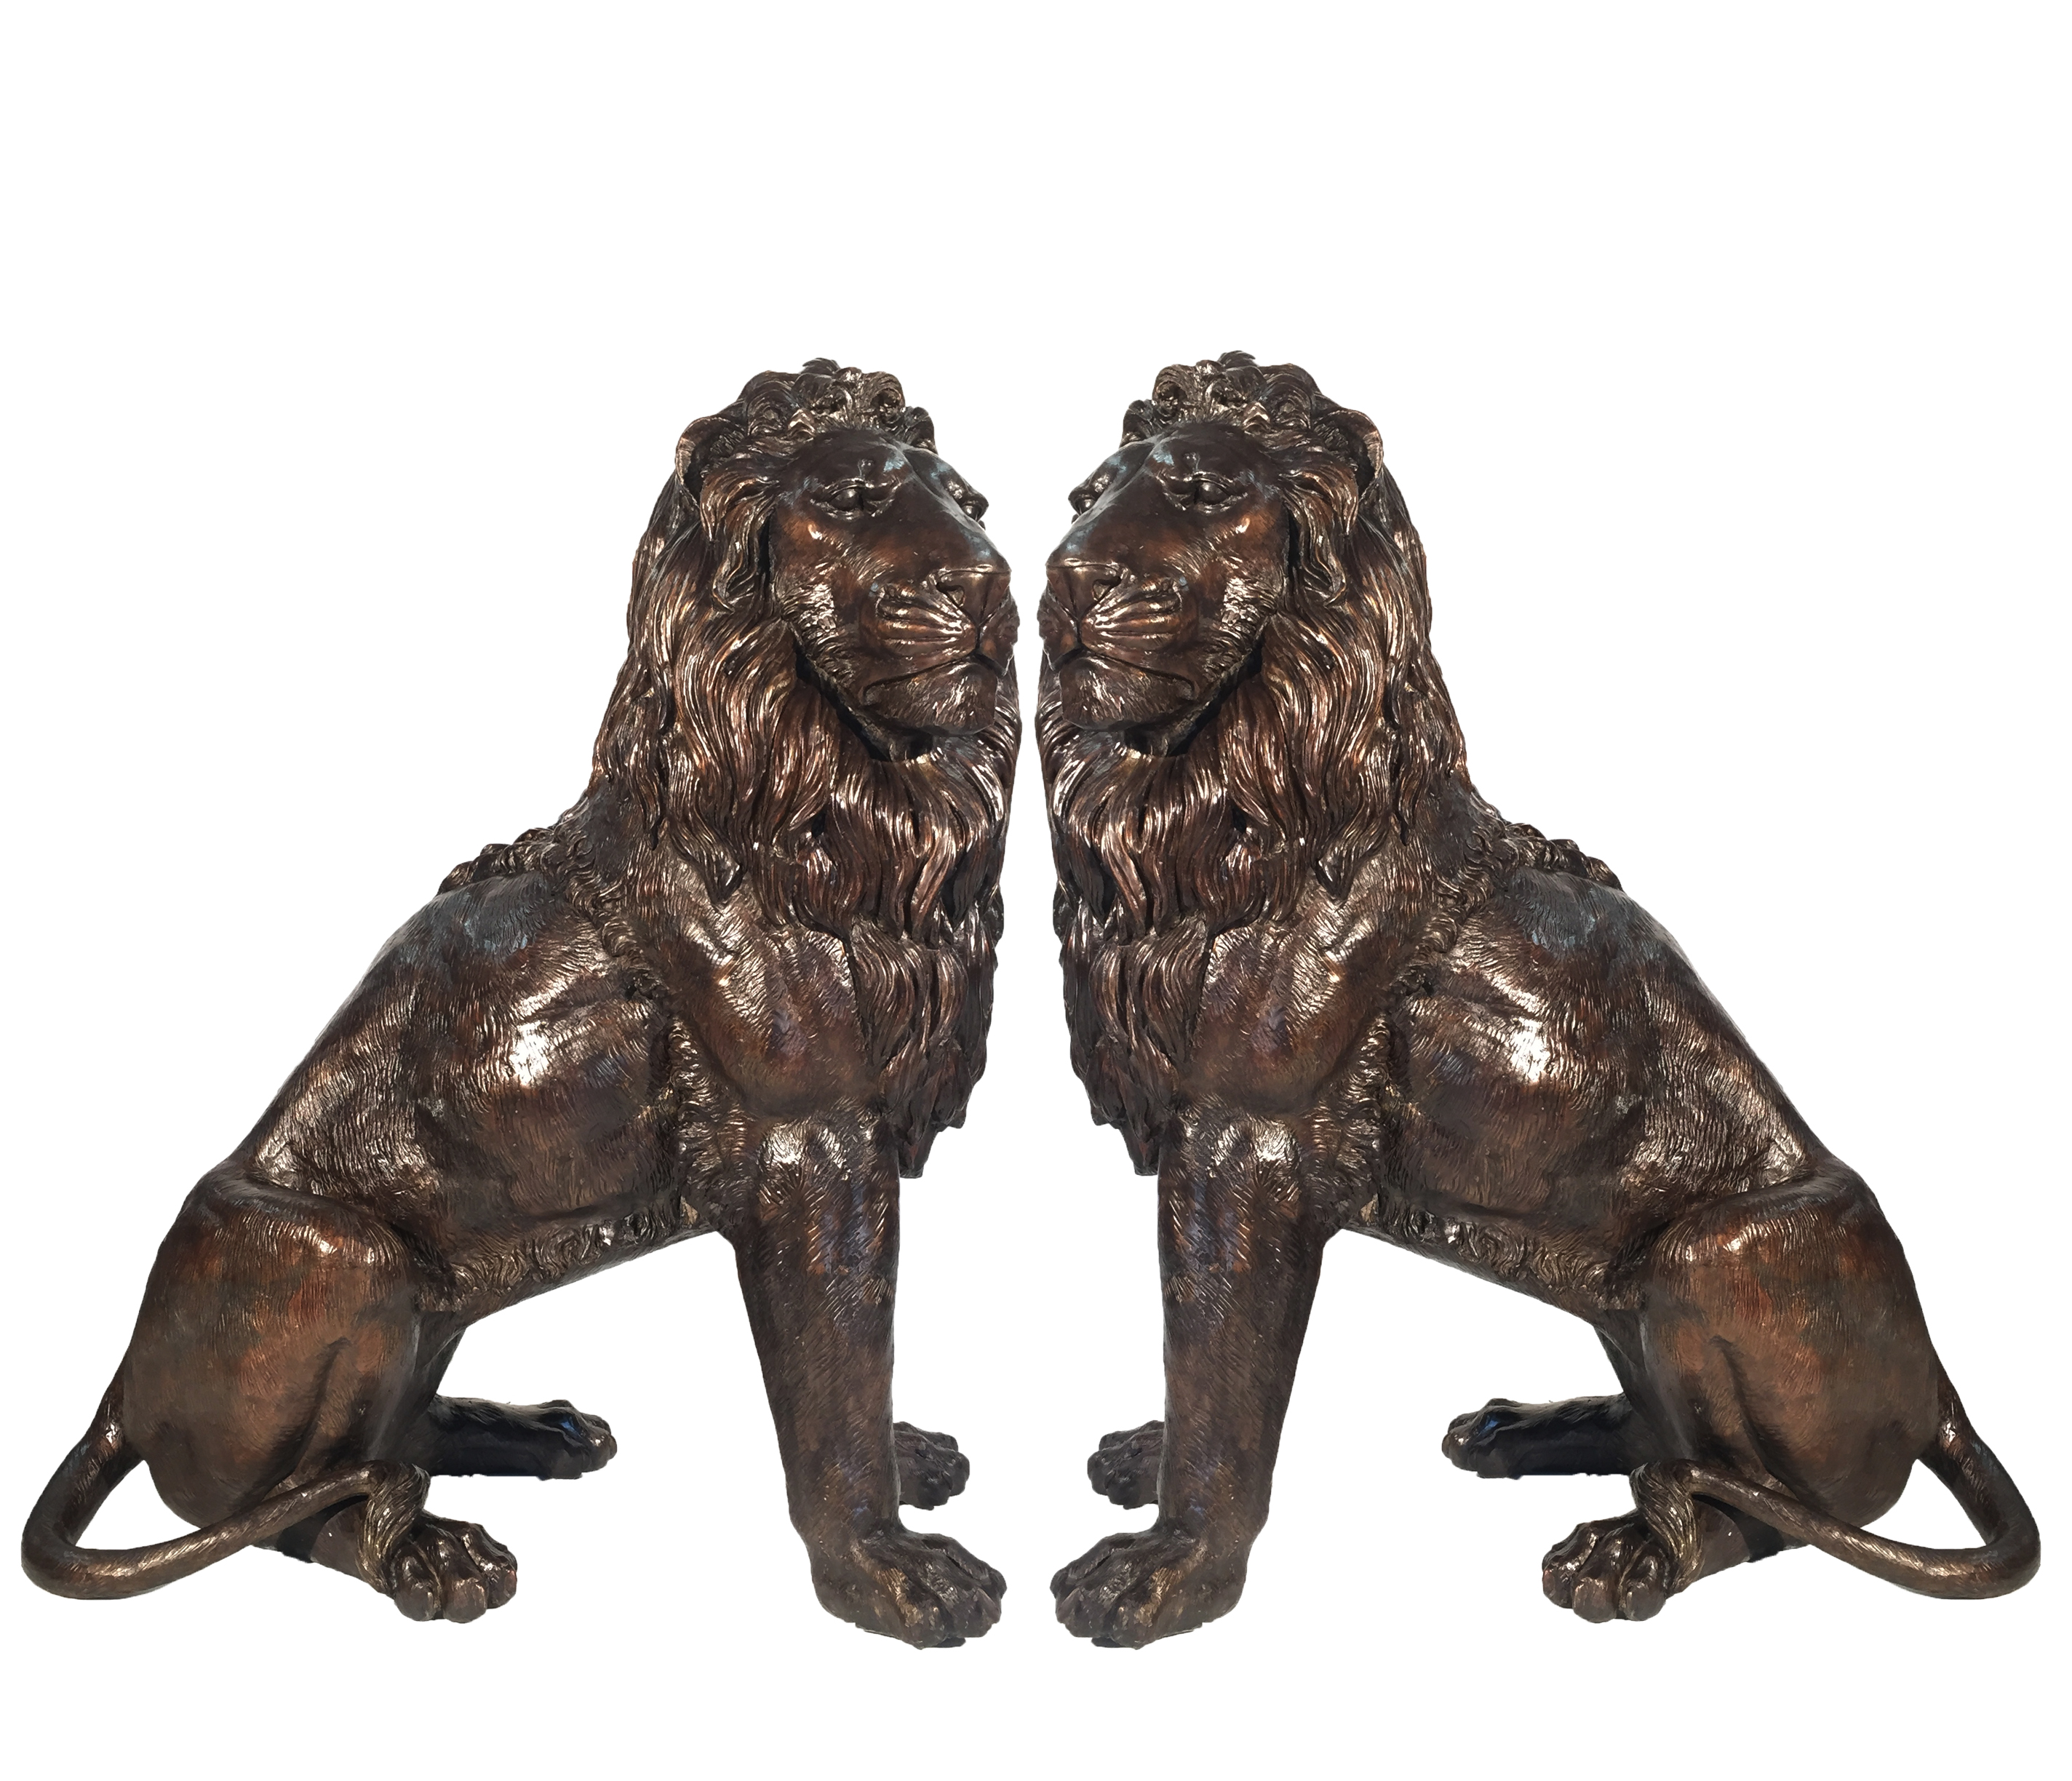 Cast Bronze Sitting Lion Sculpture Set Metropolitan Galleries Inc.